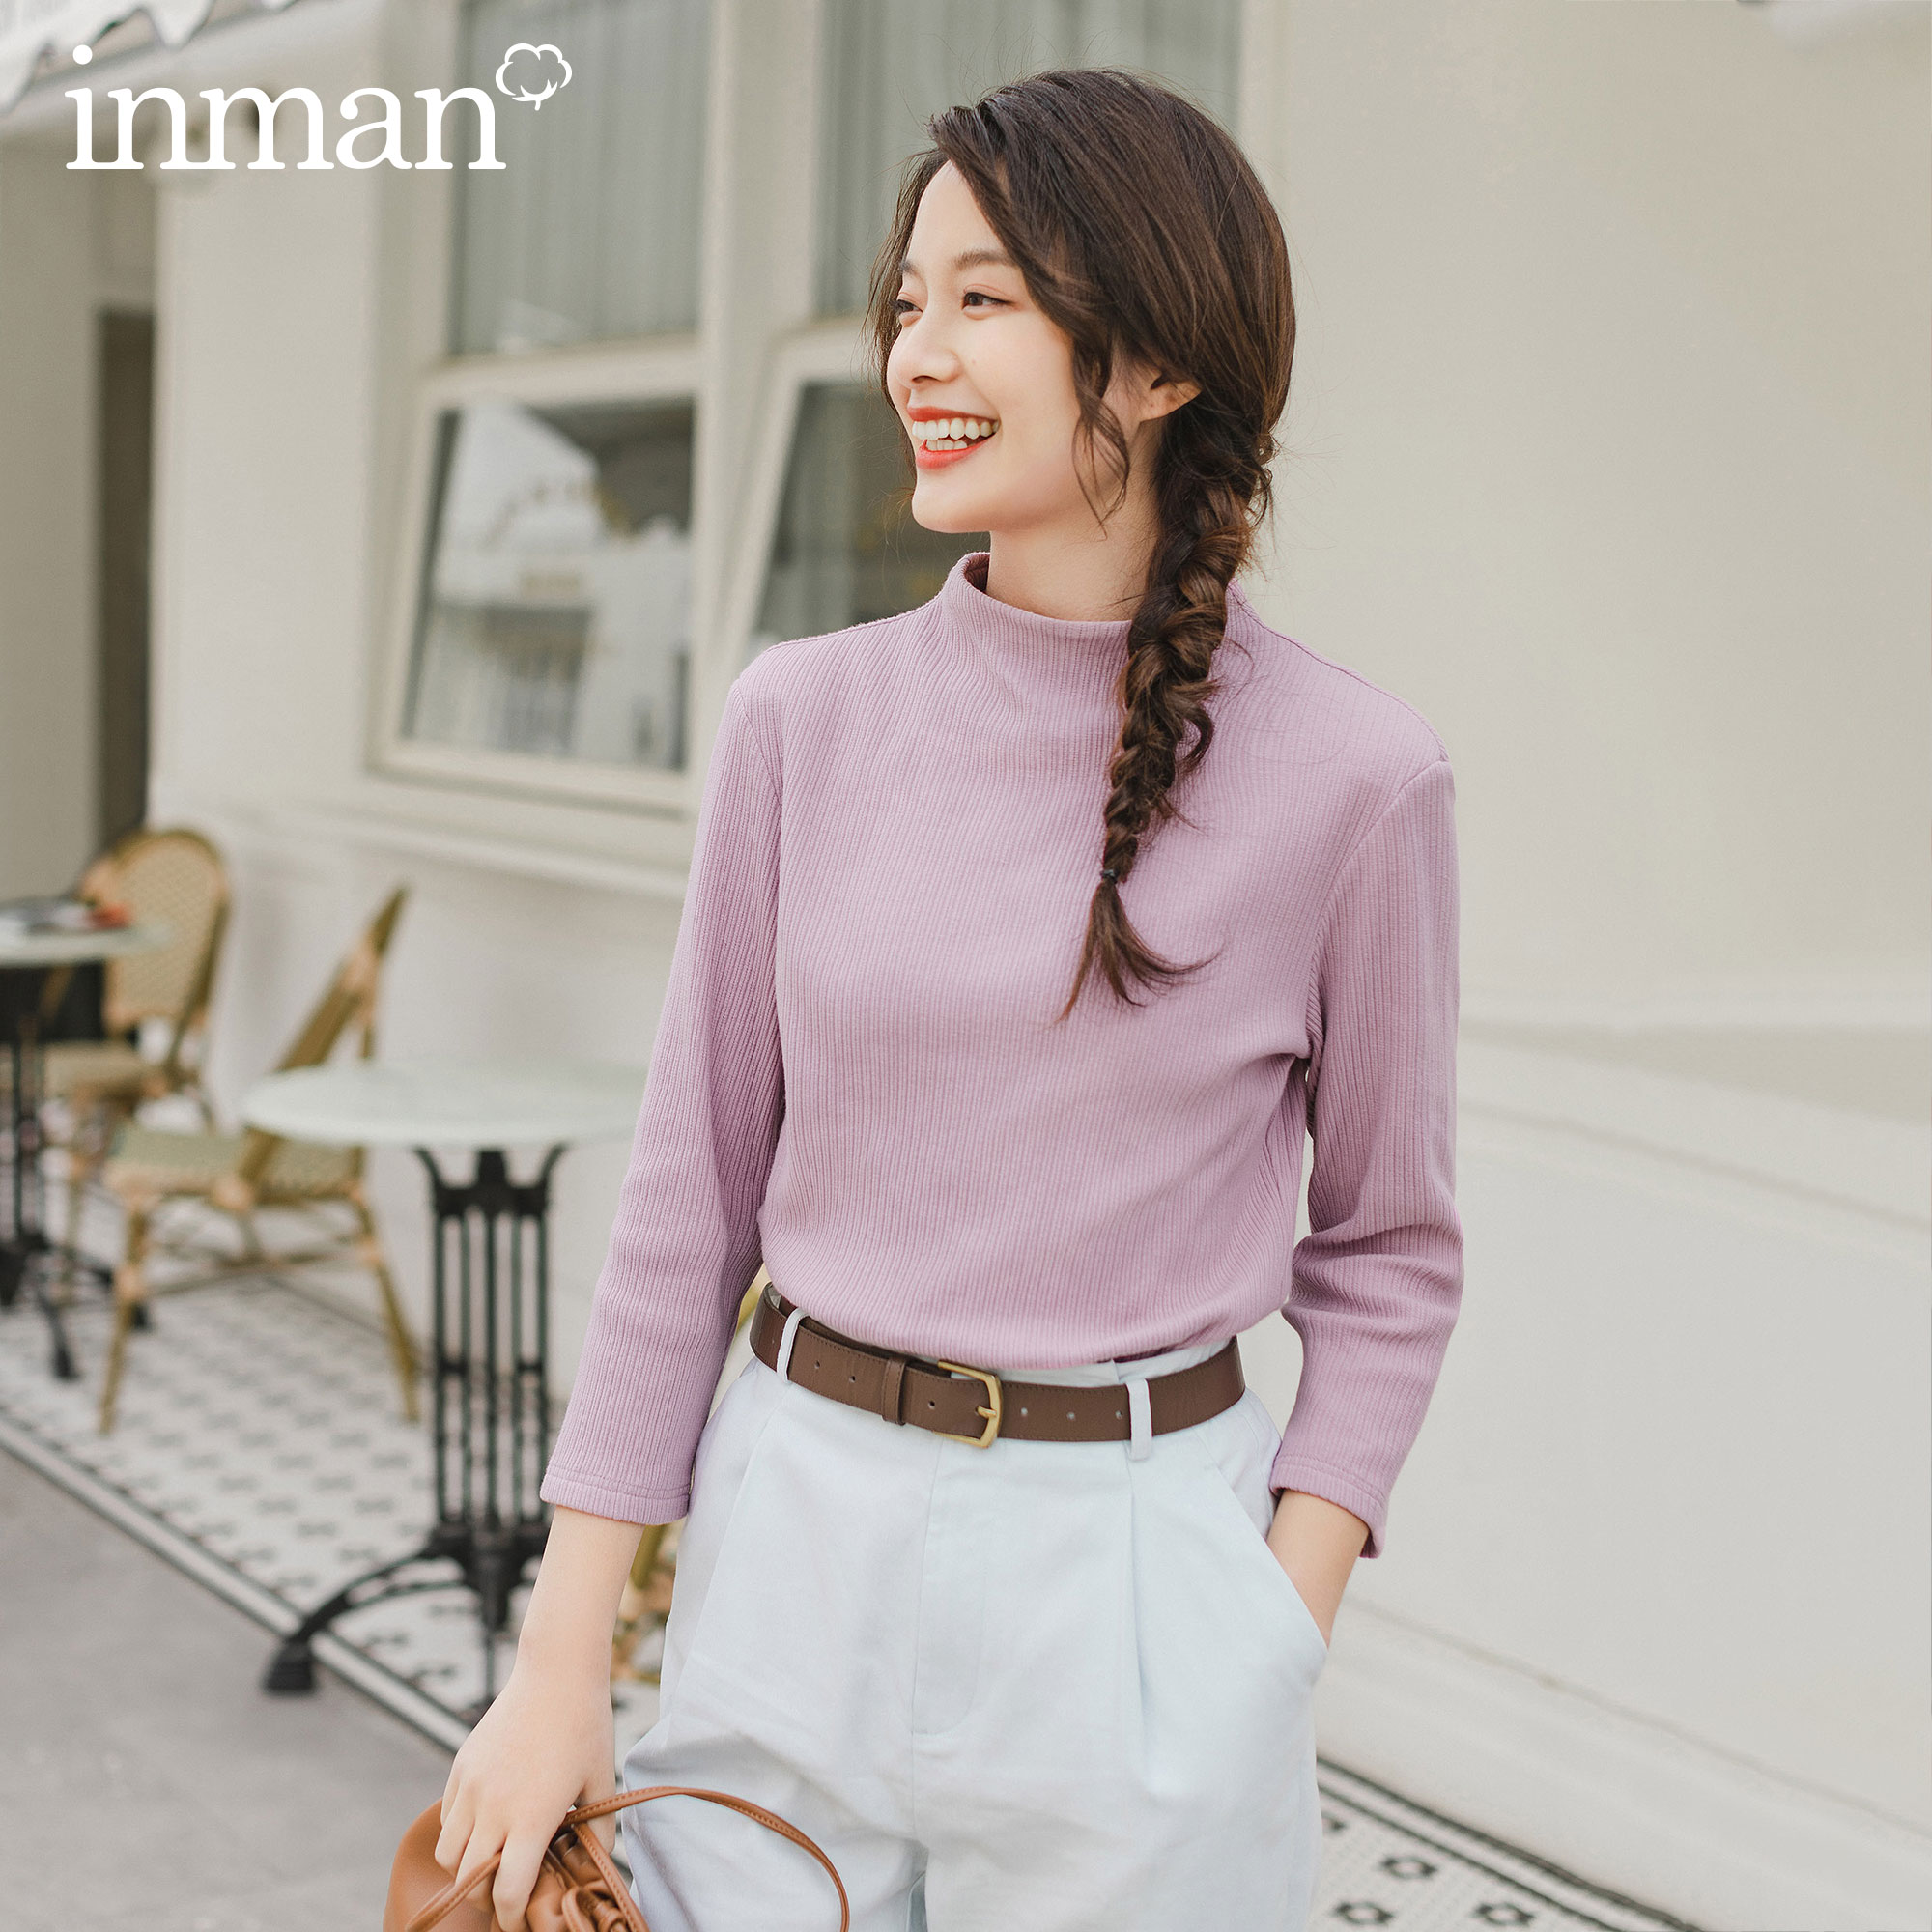 INMAN 3/4 Sleeve Women T-Shirt 2020 Spring New Arrival Artsy Stand Collar Elastic Fitting Tops T-Shirt